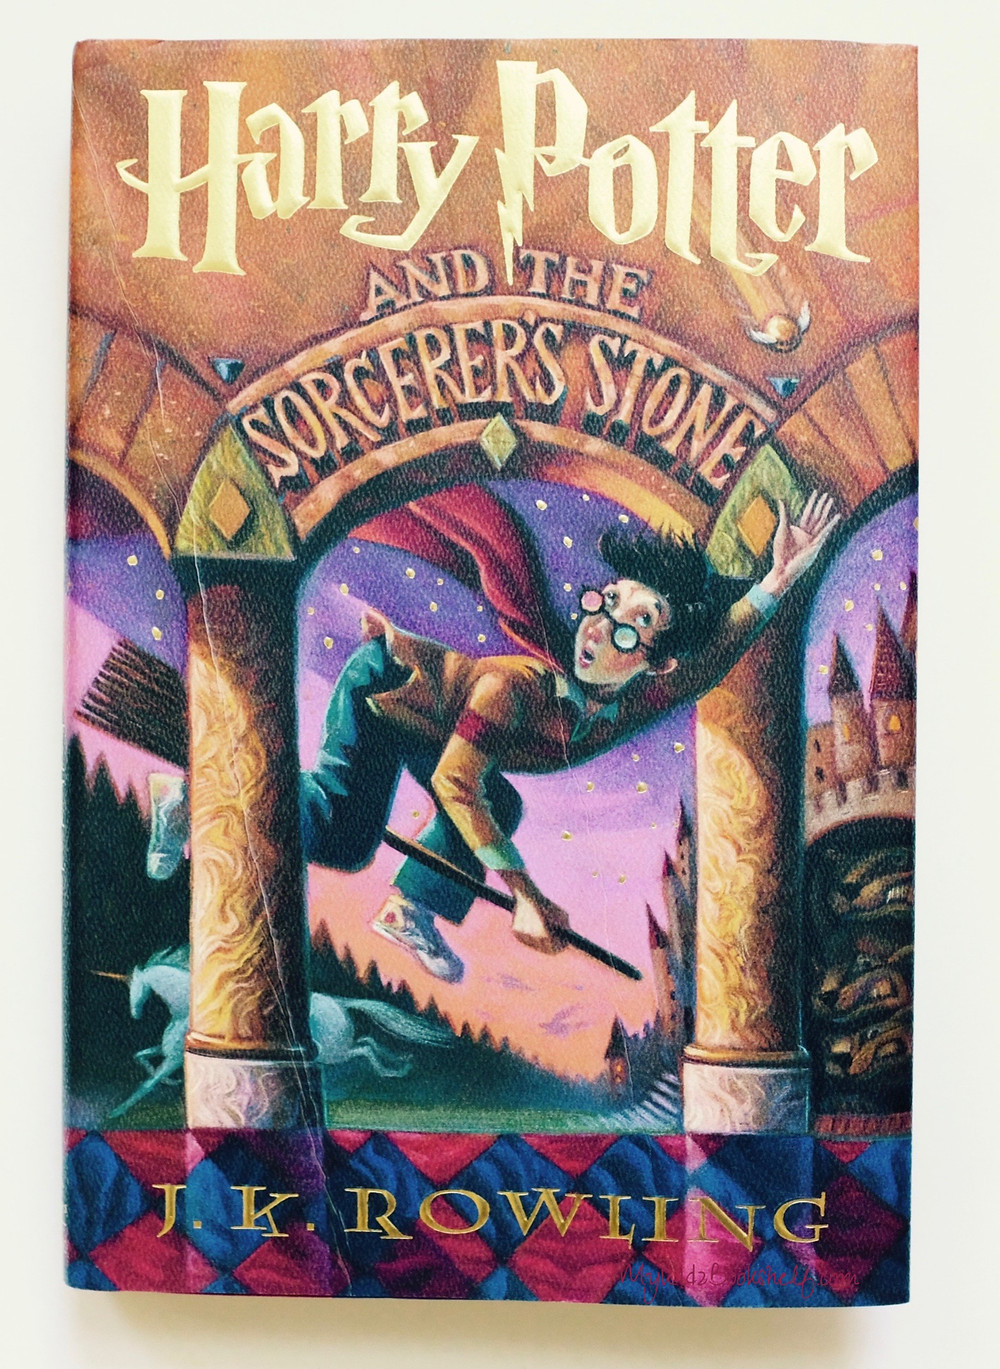 Harry-Potter-and-the-Sorcerer's Stone-by-J.K.-Rowling